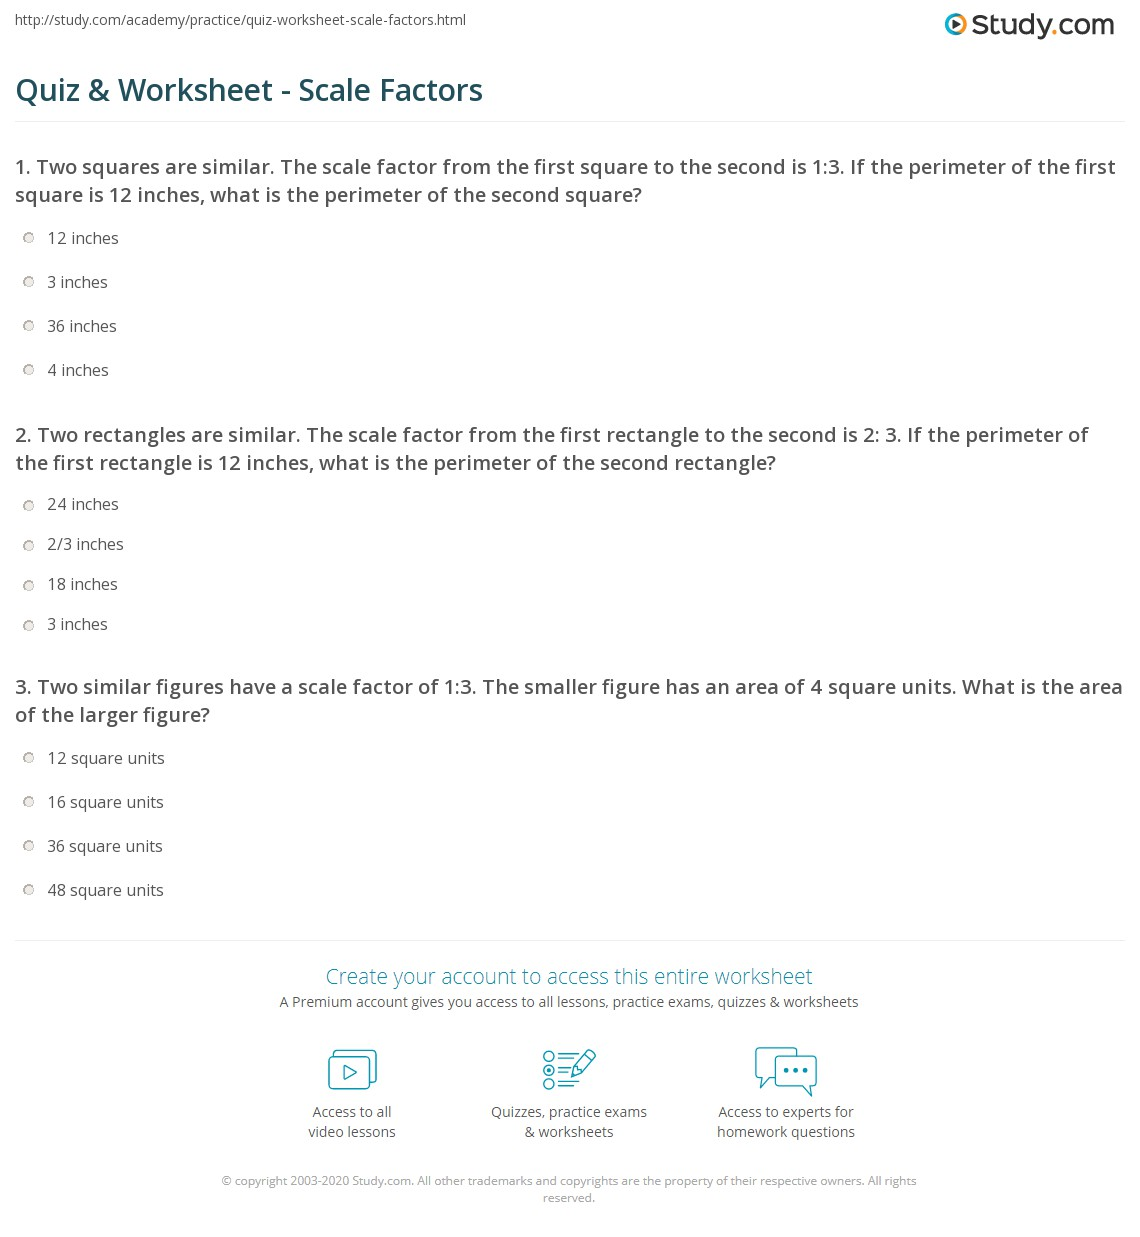 Quiz & Worksheet - Scale Factors | Study.com